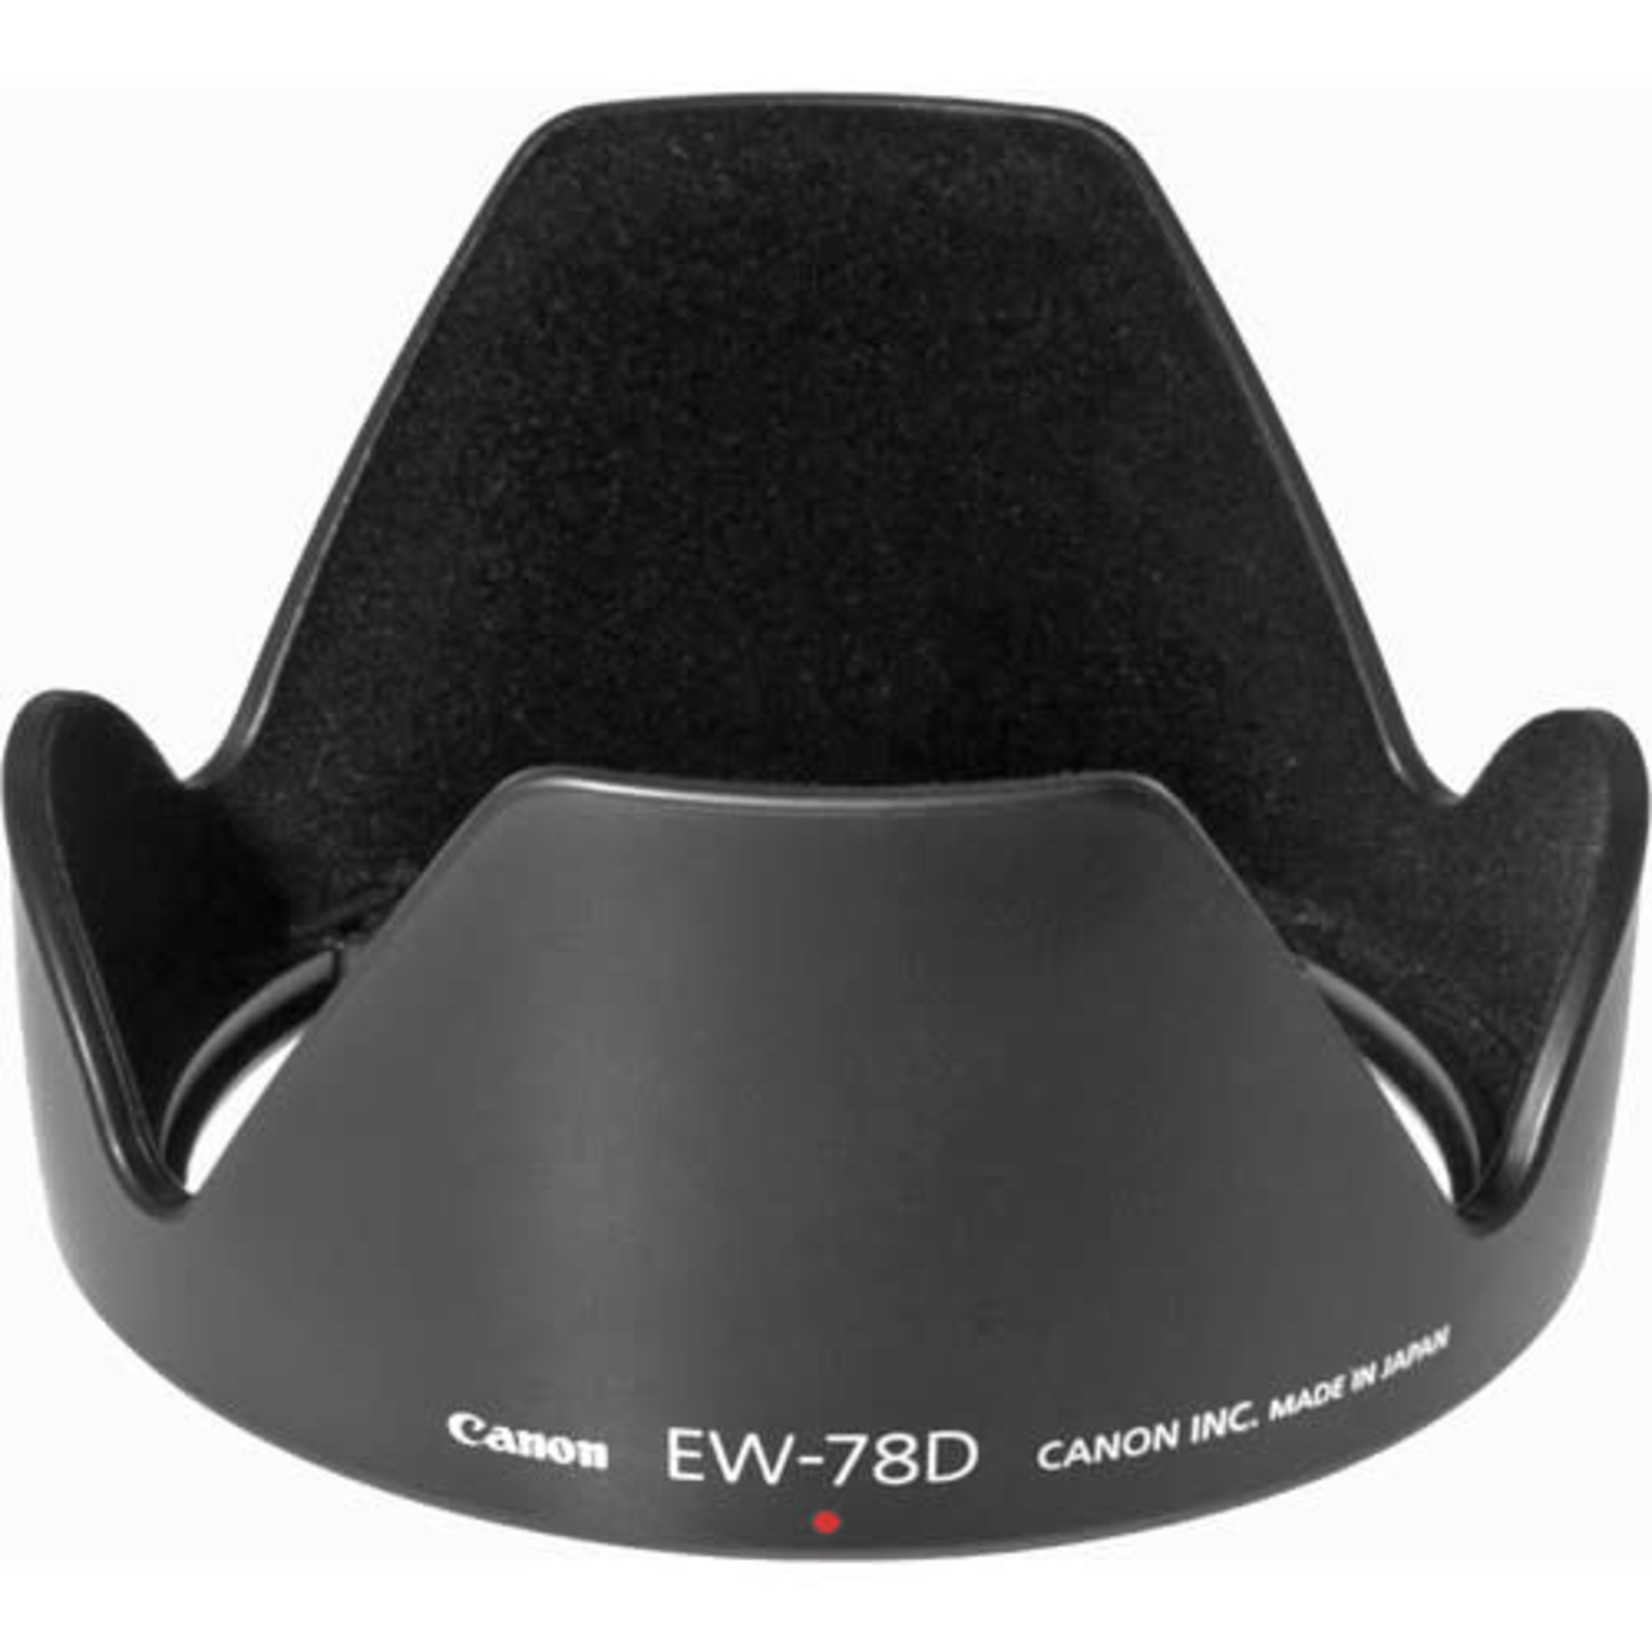 Canon Canon EW-78D Lens Hood for EF 28-200mm f/3.5-5.6 and EF-S 18-200mm f/3.5-5.6 IS Lenses